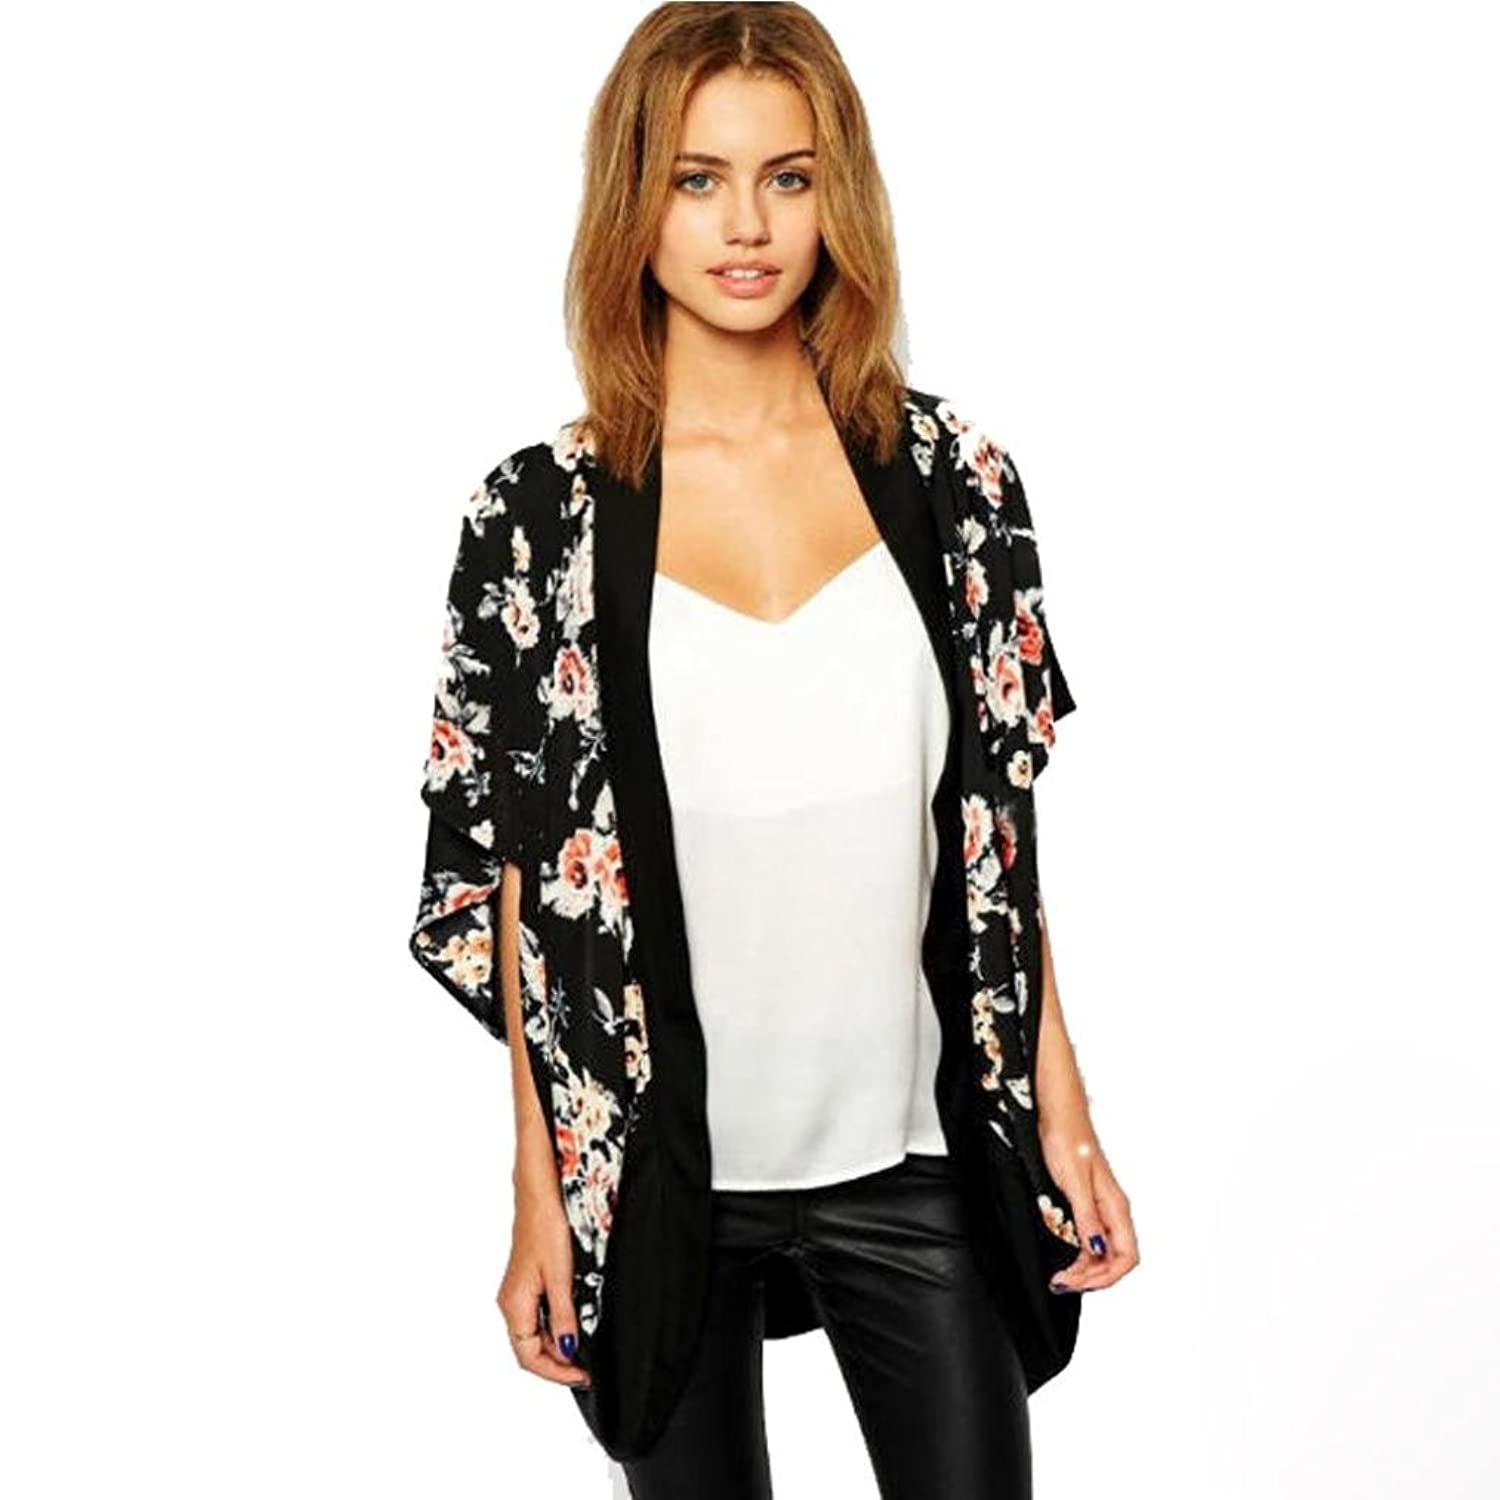 Womail Women Fashion Chiffon Floral Kimono Cardigan Tops Blouse